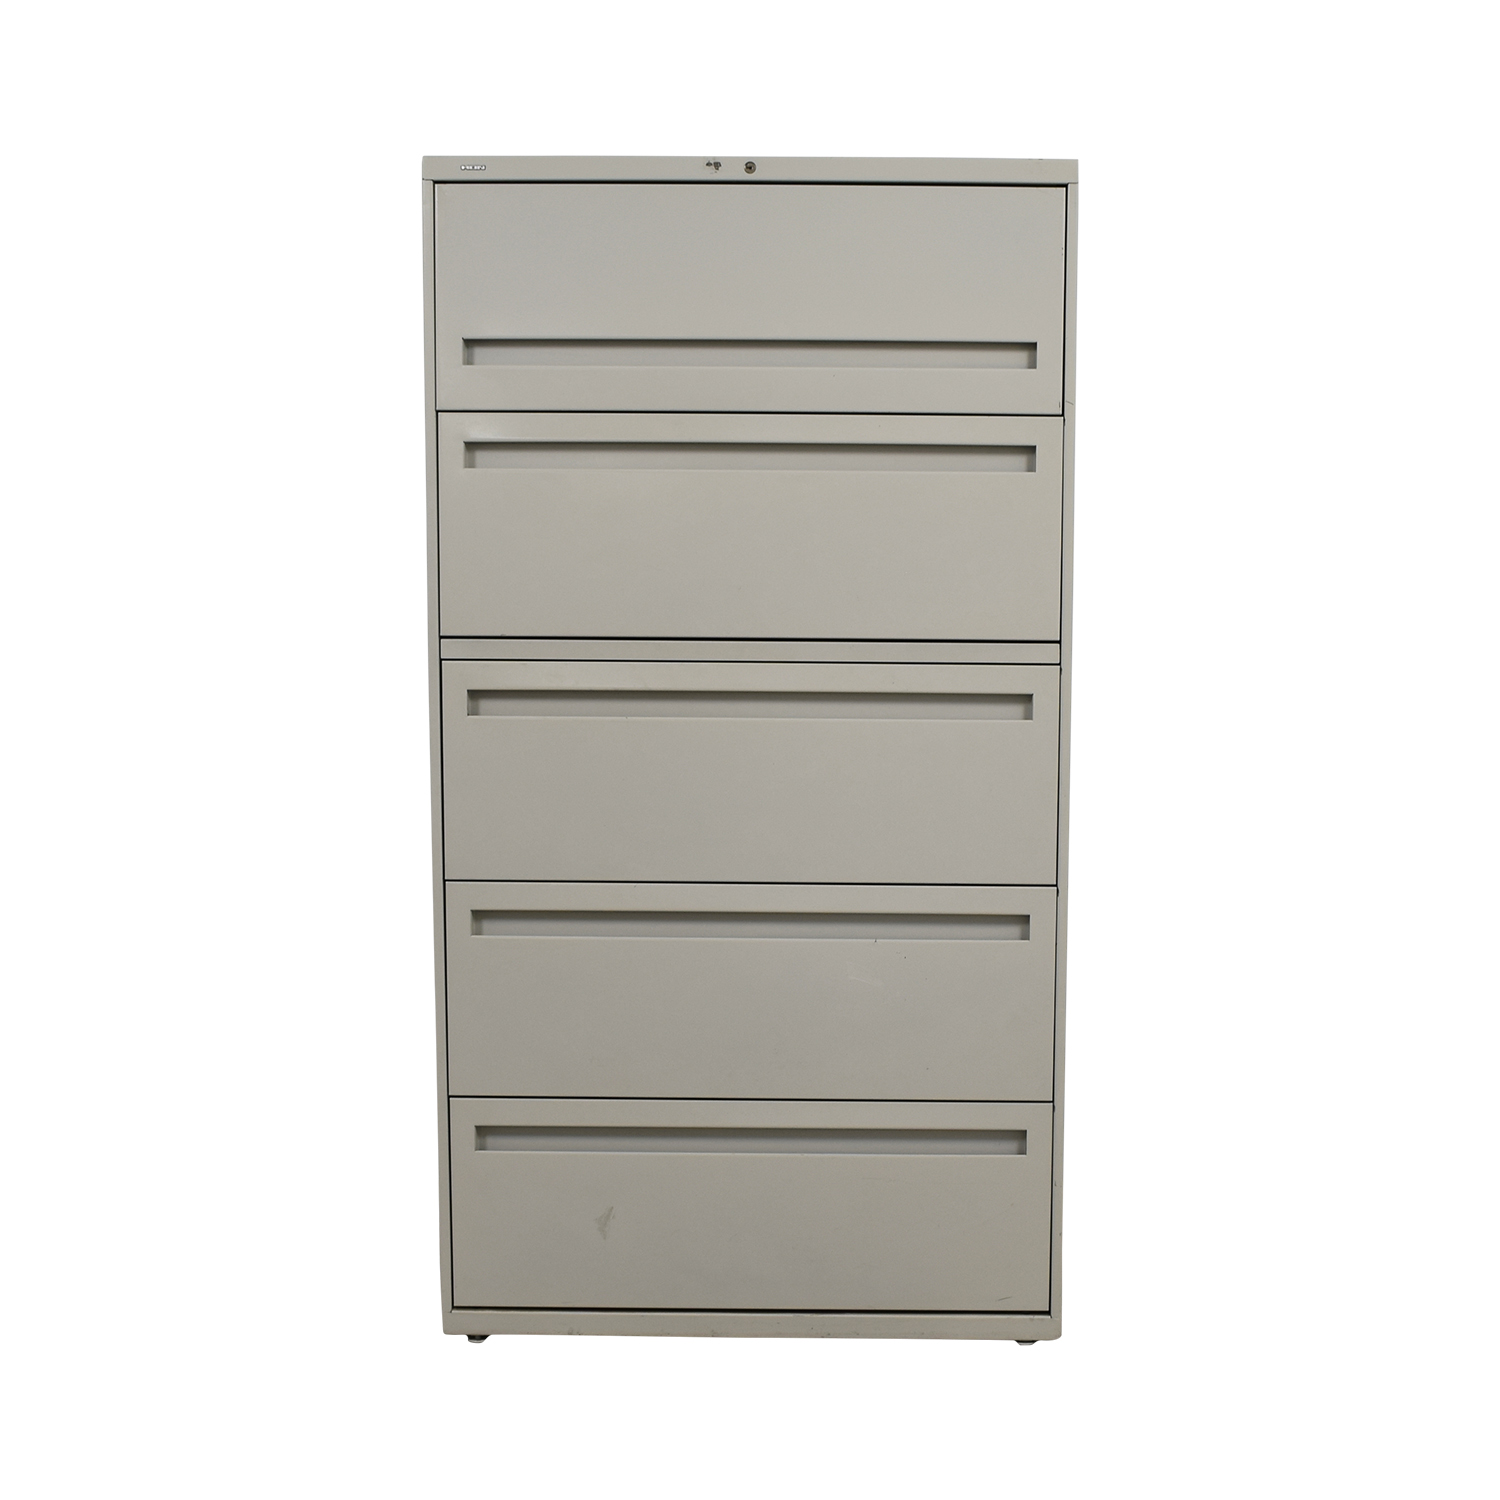 Hon Hon Five-Drawer Lateral File used